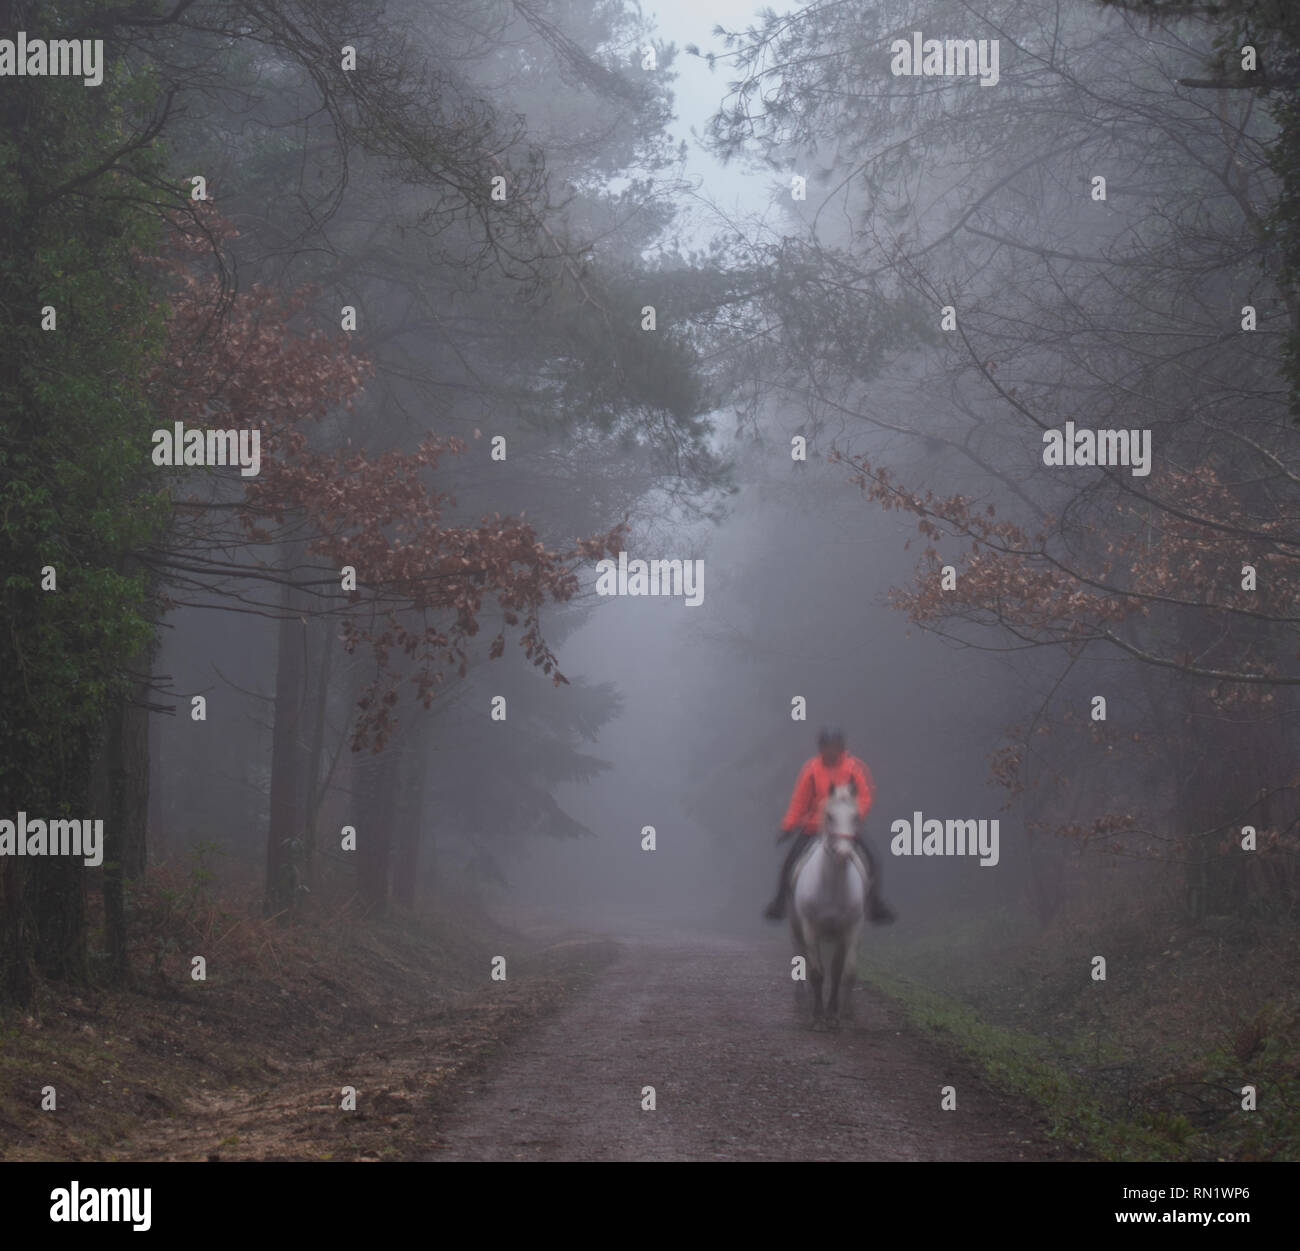 Trinity Hill, East Devon, UK. 16th February 2019. UK Weather:  Thick fog envelopes the woodland at East Devon beauty spot, Trinity Hill. A woman in a bright jacket rides along the bridle path in thick fog. Credit: Celia McMahon/Alamy Live News - Stock Image